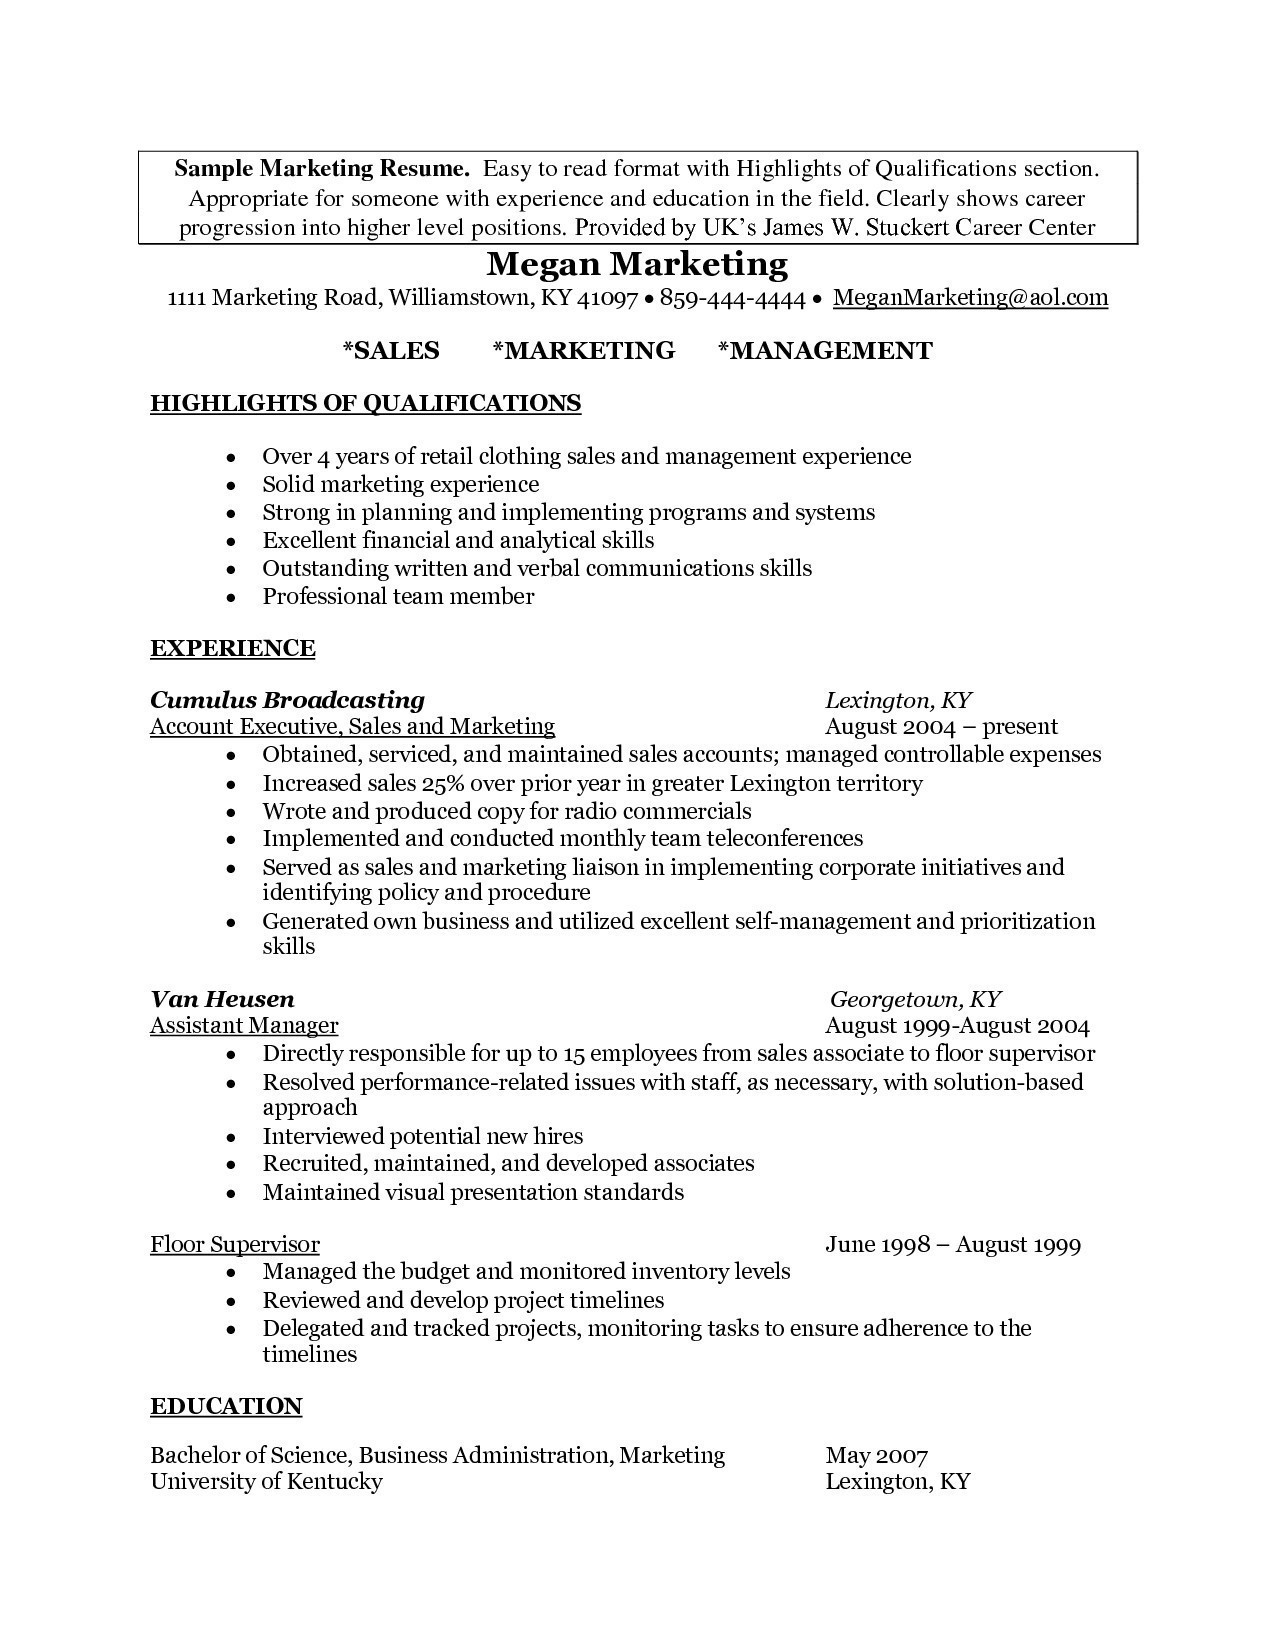 Marketing Resume Examples  Creative Marketing Resume Examples Unique Photography How To Do A Cv